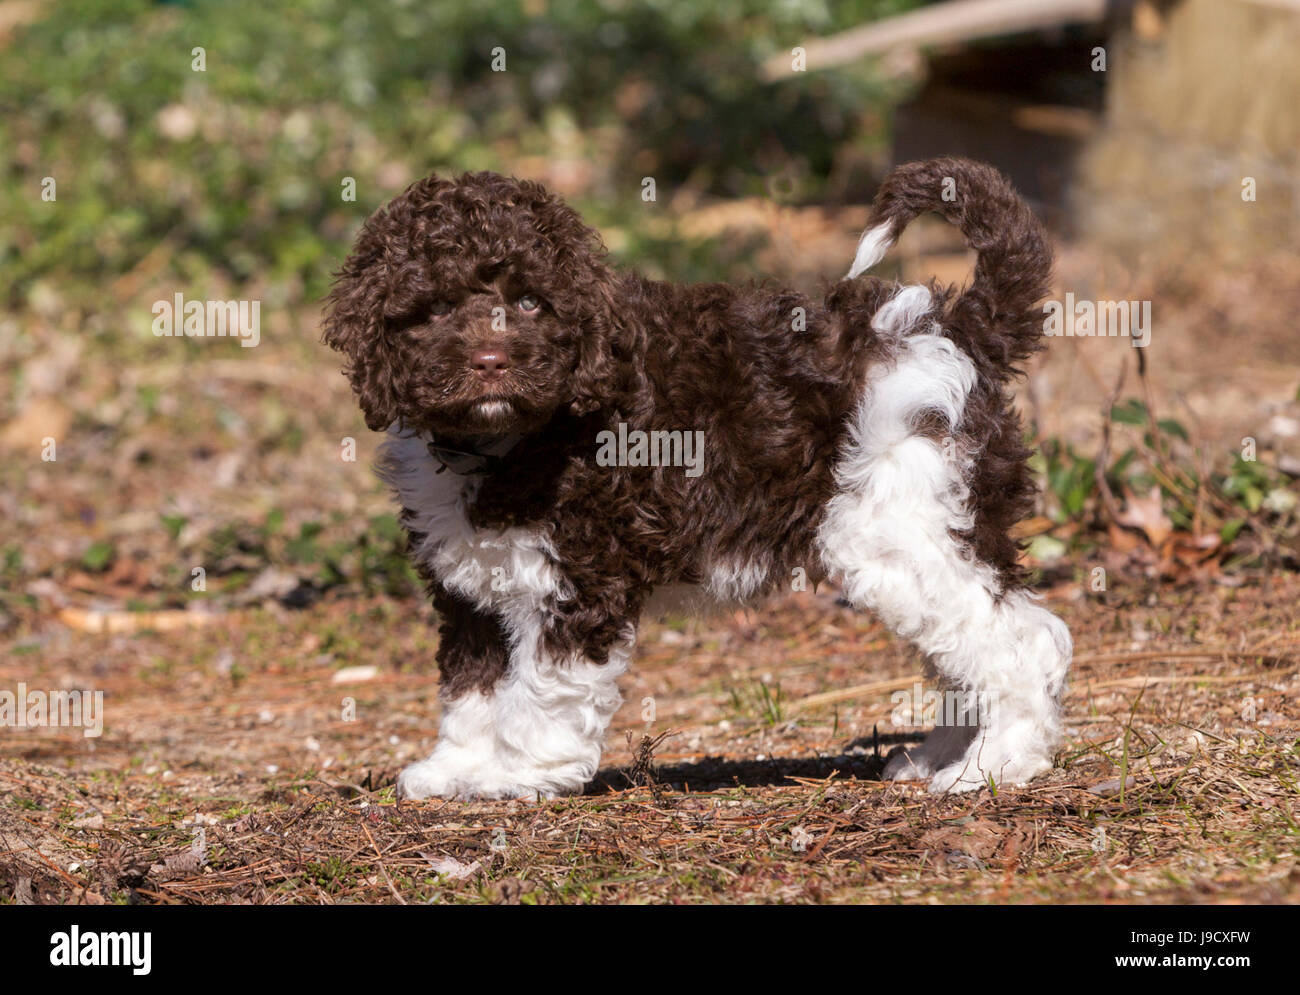 Brown Cockapoo Stock Photos & Brown Cockapoo Stock Images